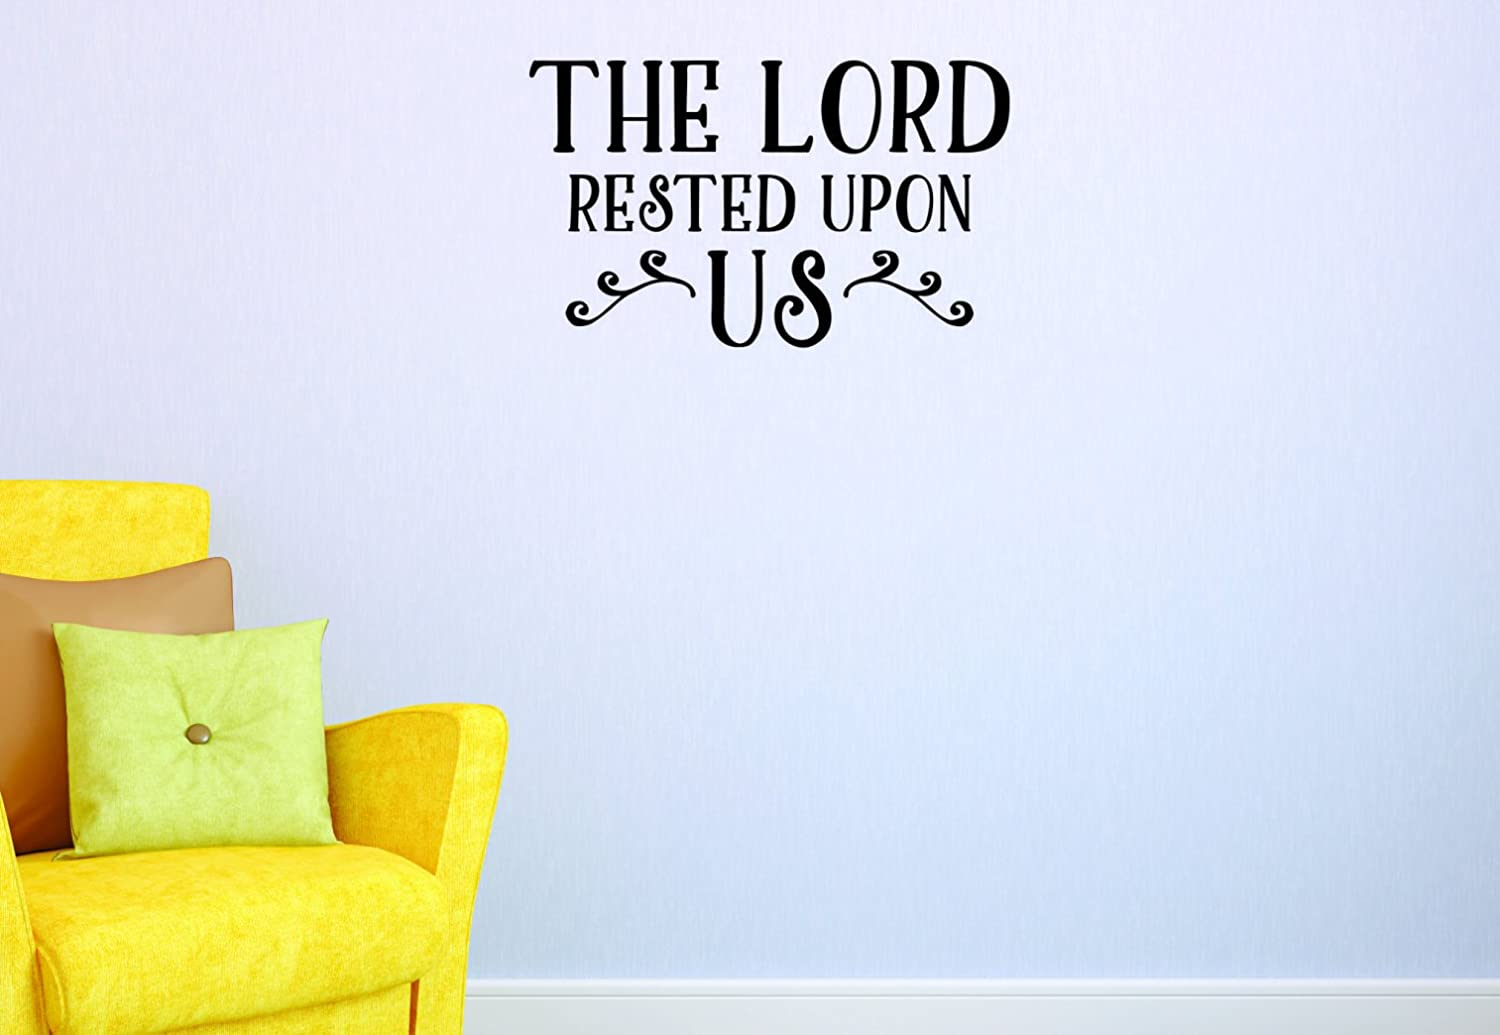 20 Inches x 30 Inches Color Black Design with Vinyl JER 2042 3 Hot New Decals The Lord Rested Upon Us Wall Art Size 20 x 30,